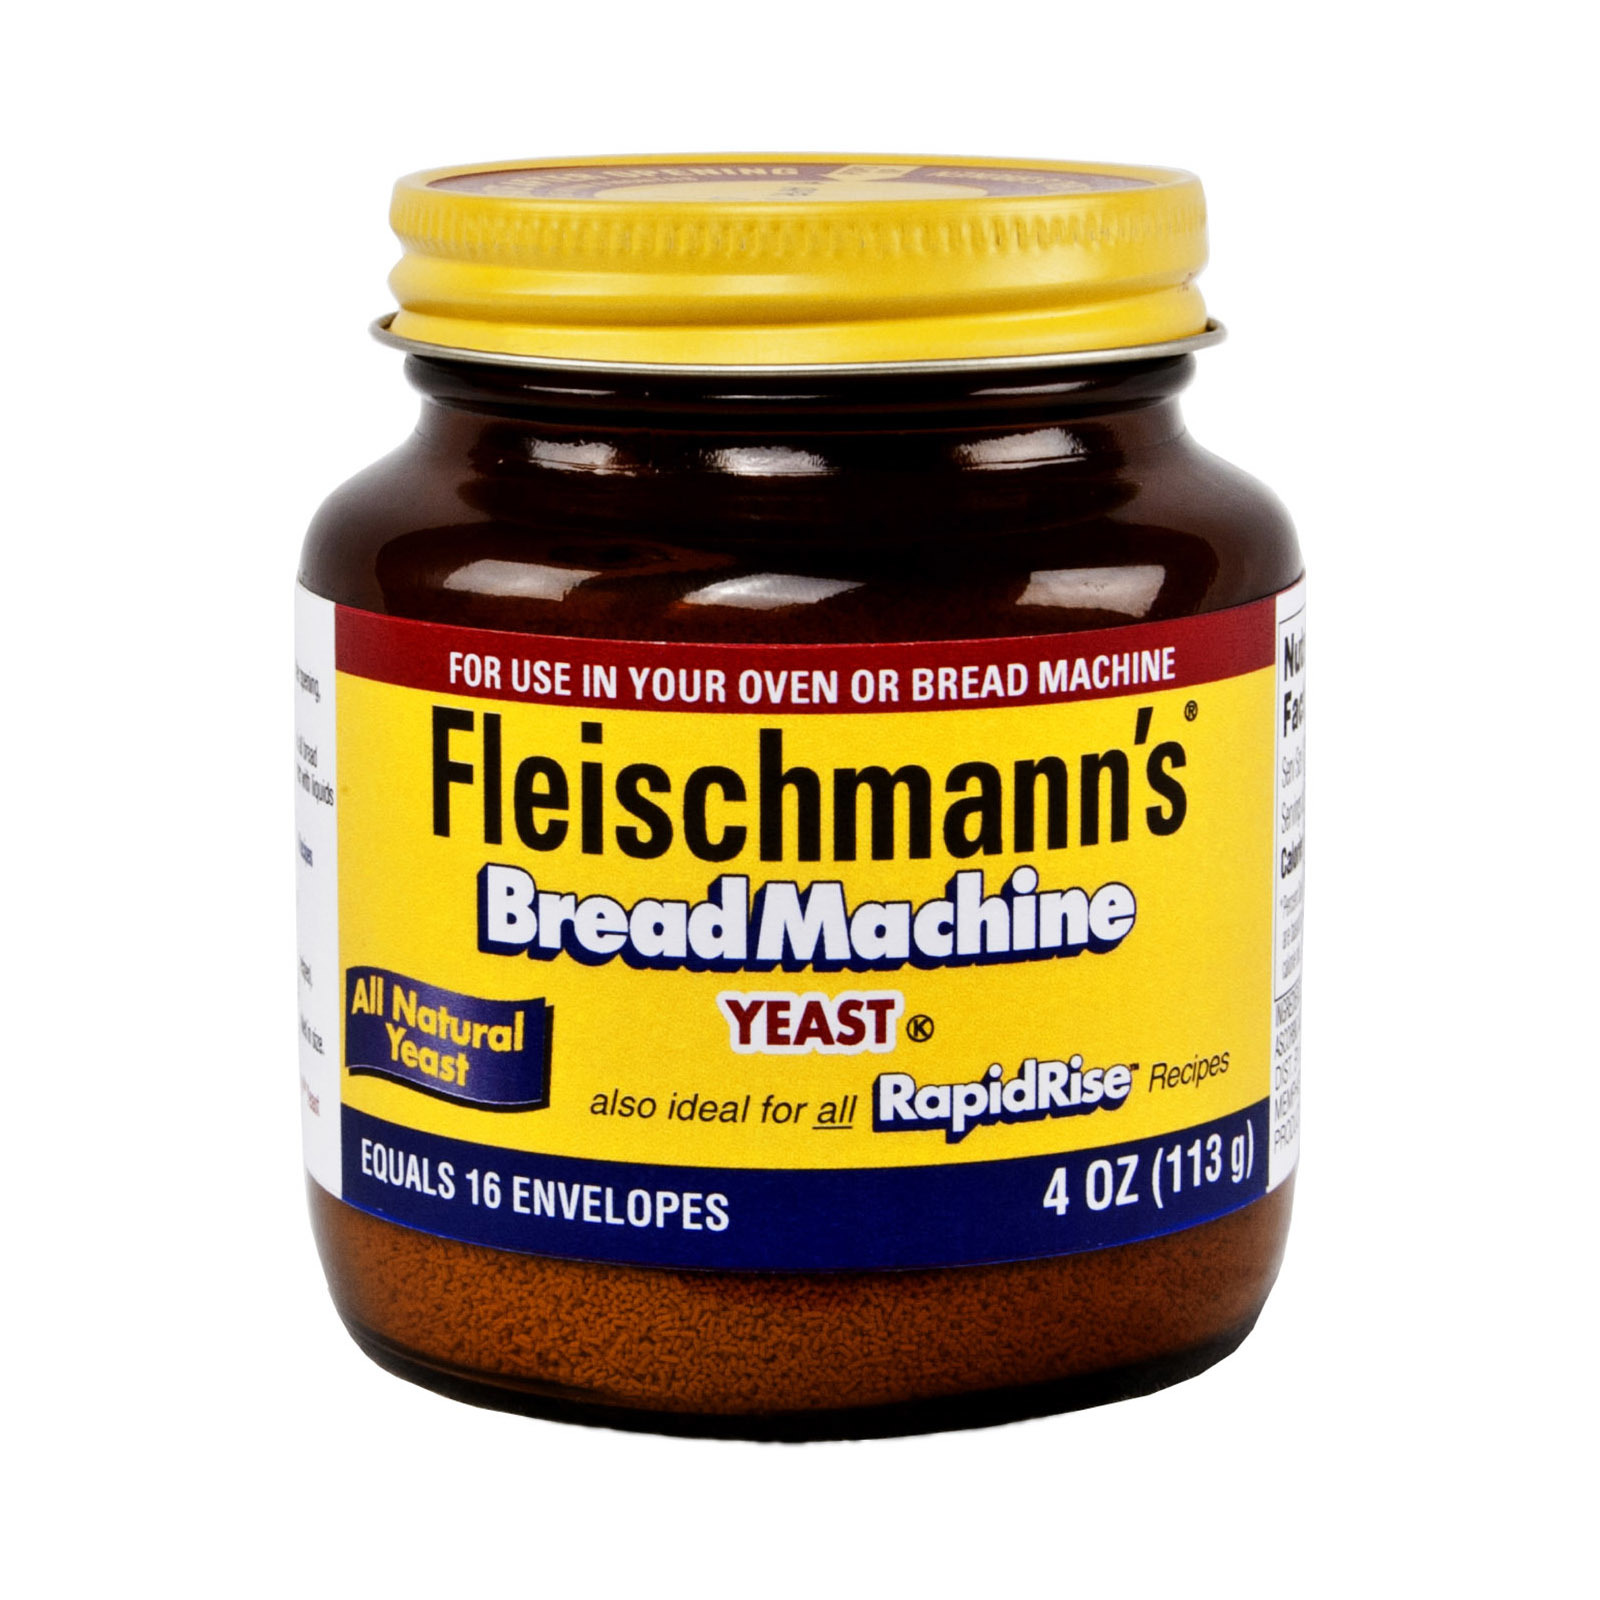 Fleischmann's Classic Bread Machine Yeast - Case of 12 - 4 oz.